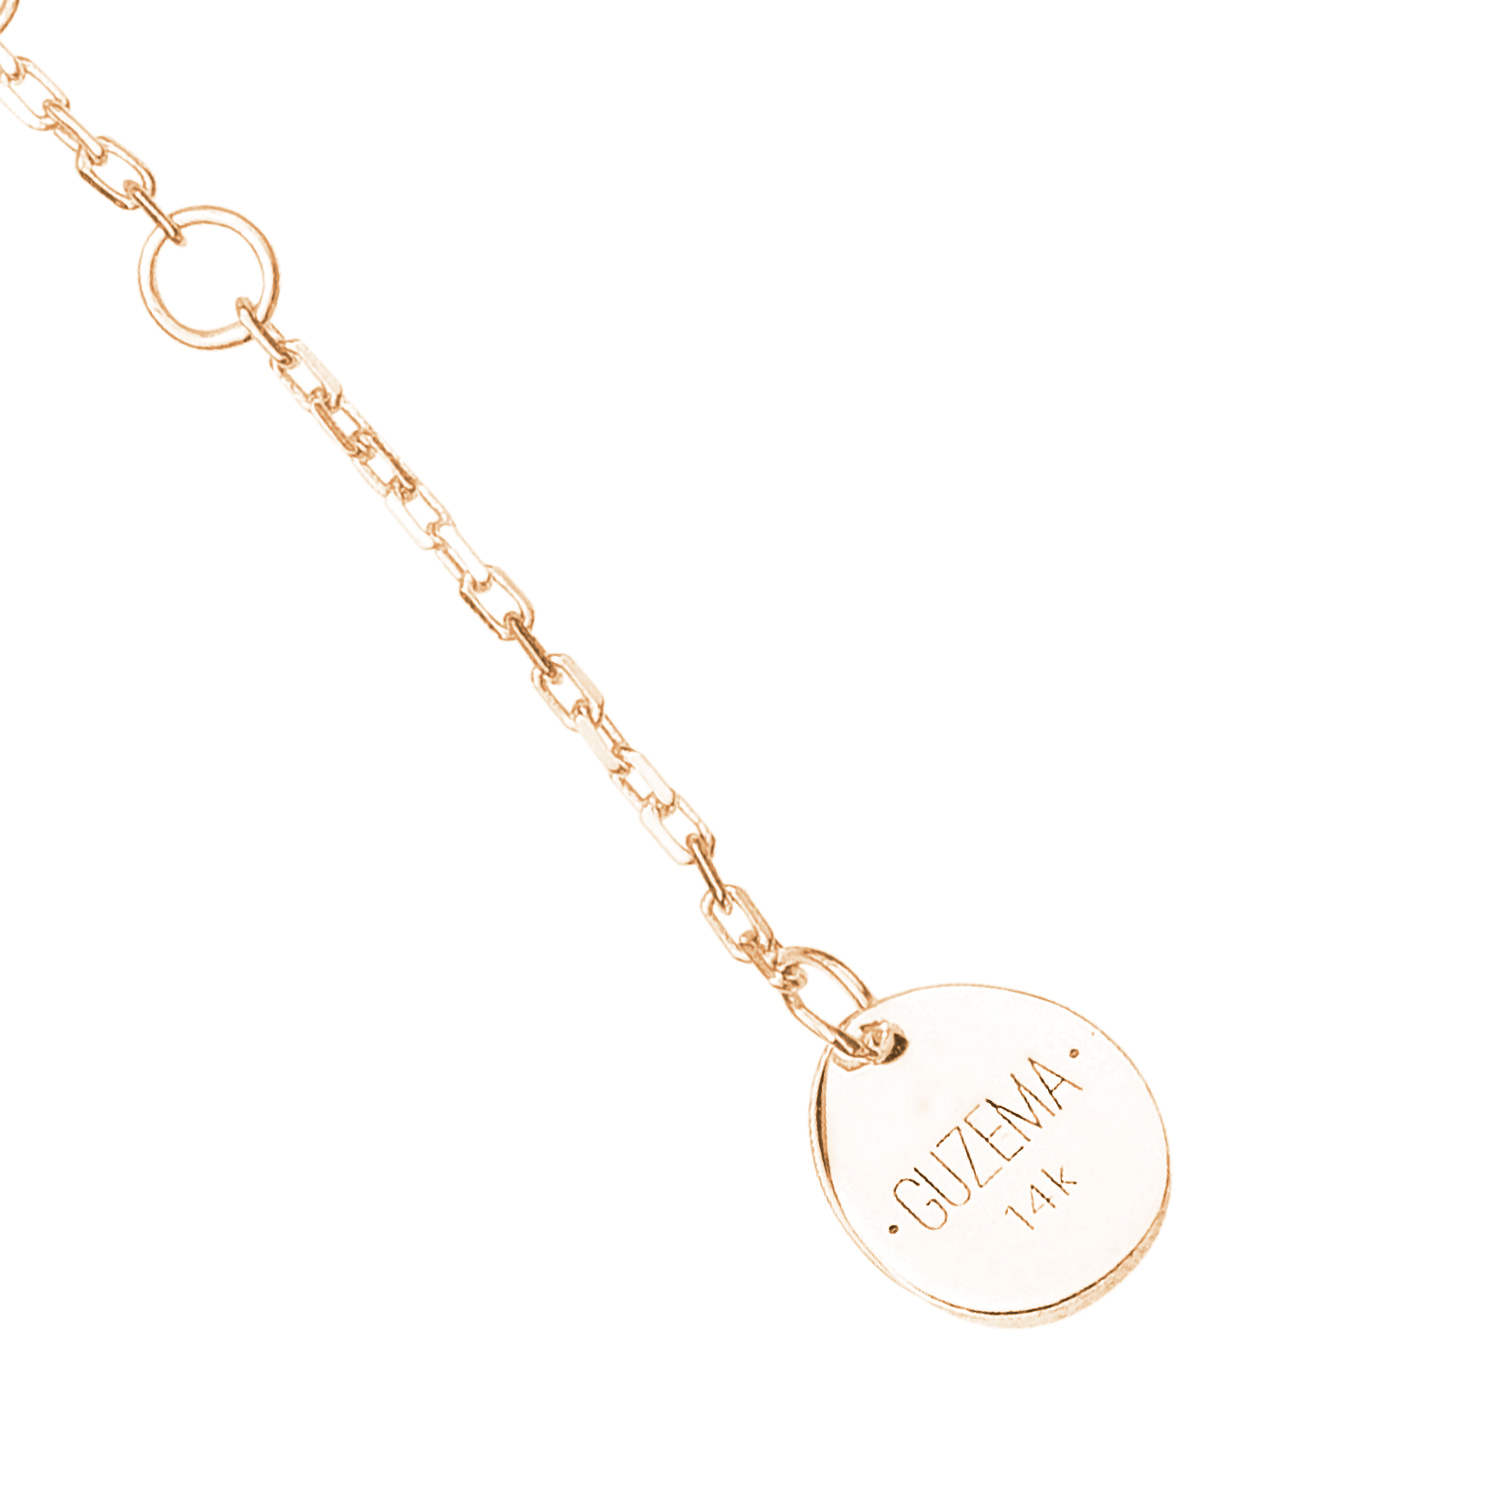 5 Flats Anklet - Yellow Gold by Guzema Fine Jewellery on curated-crowd.com